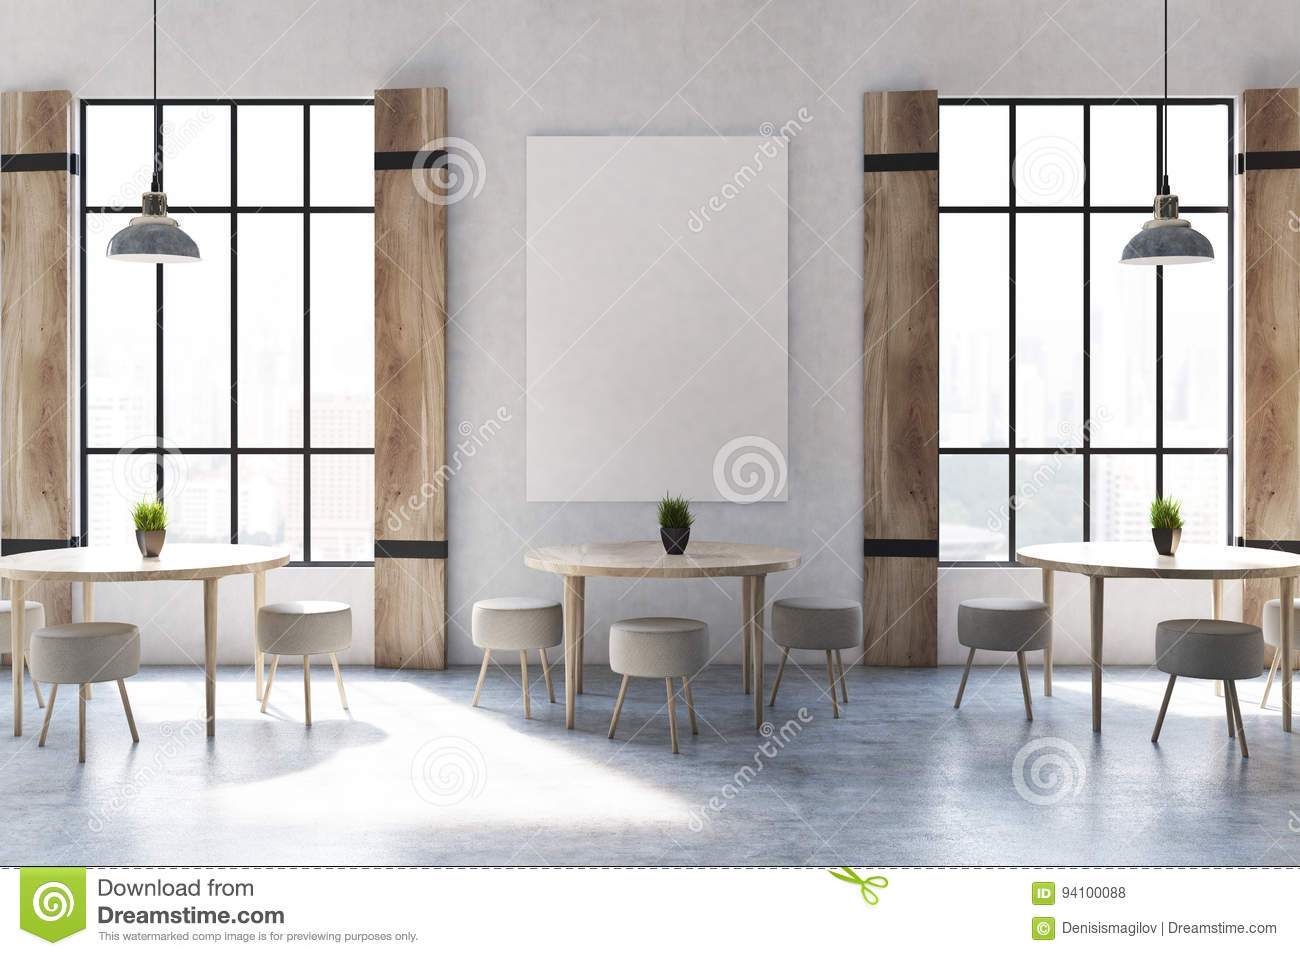 shutters cafe interior with a poster stock illustration - image